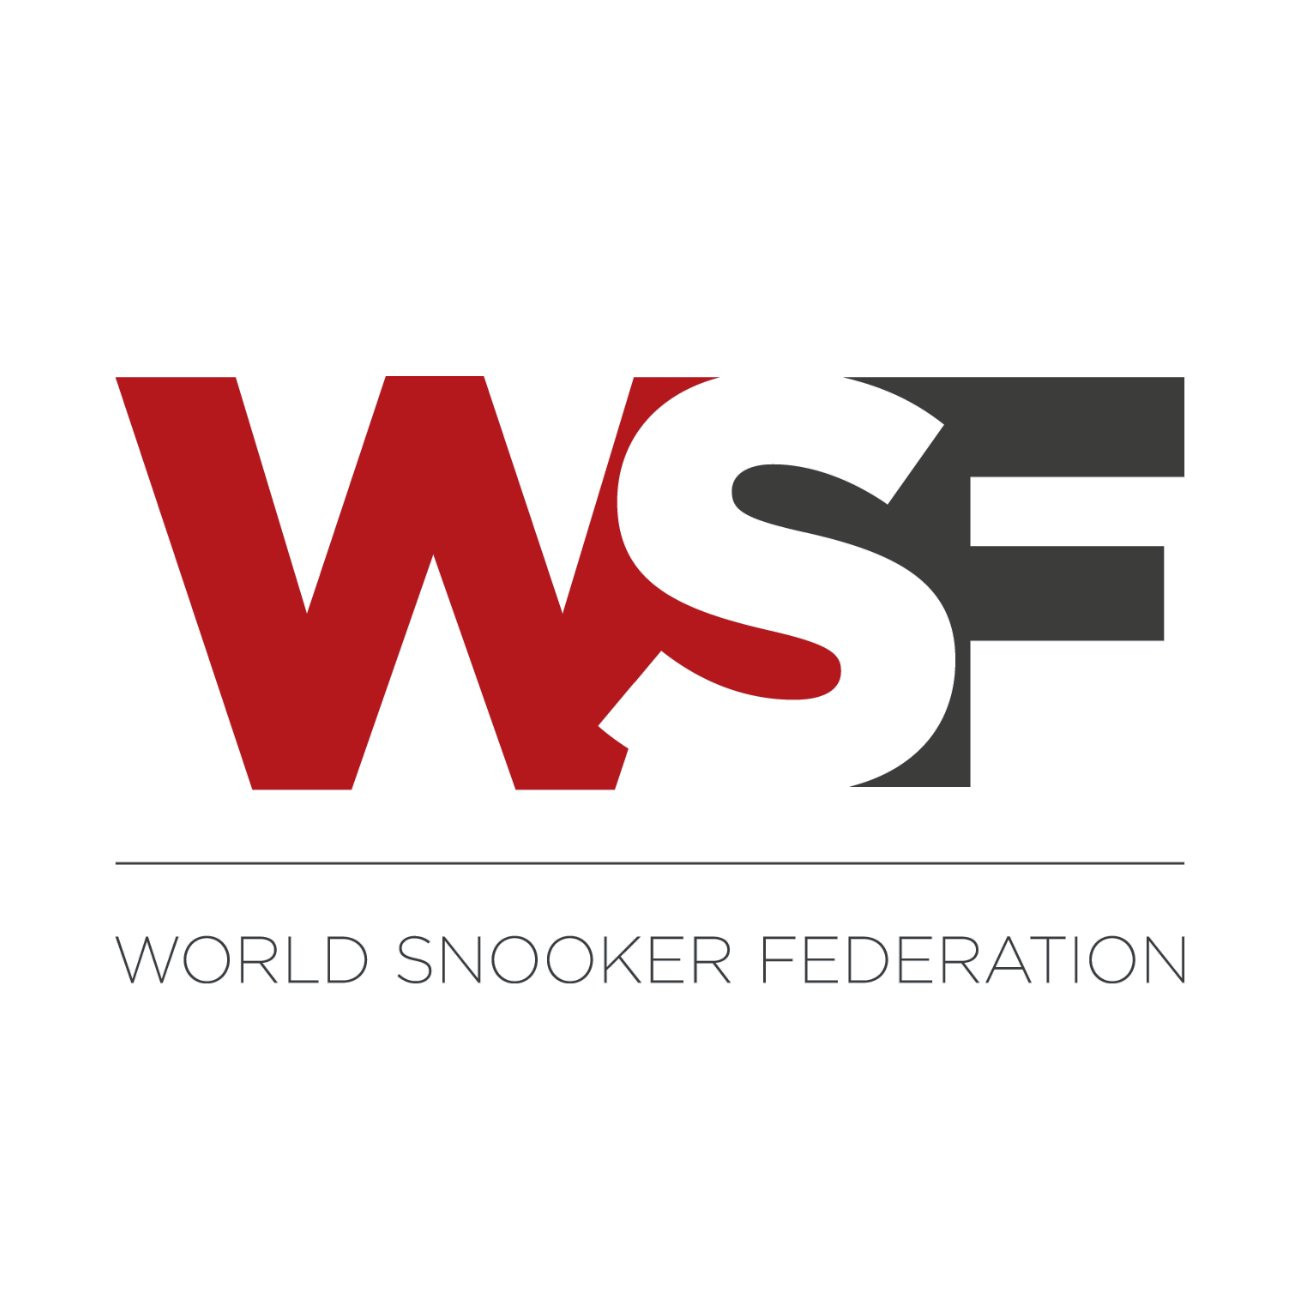 Russia newest member of World Snooker Federation